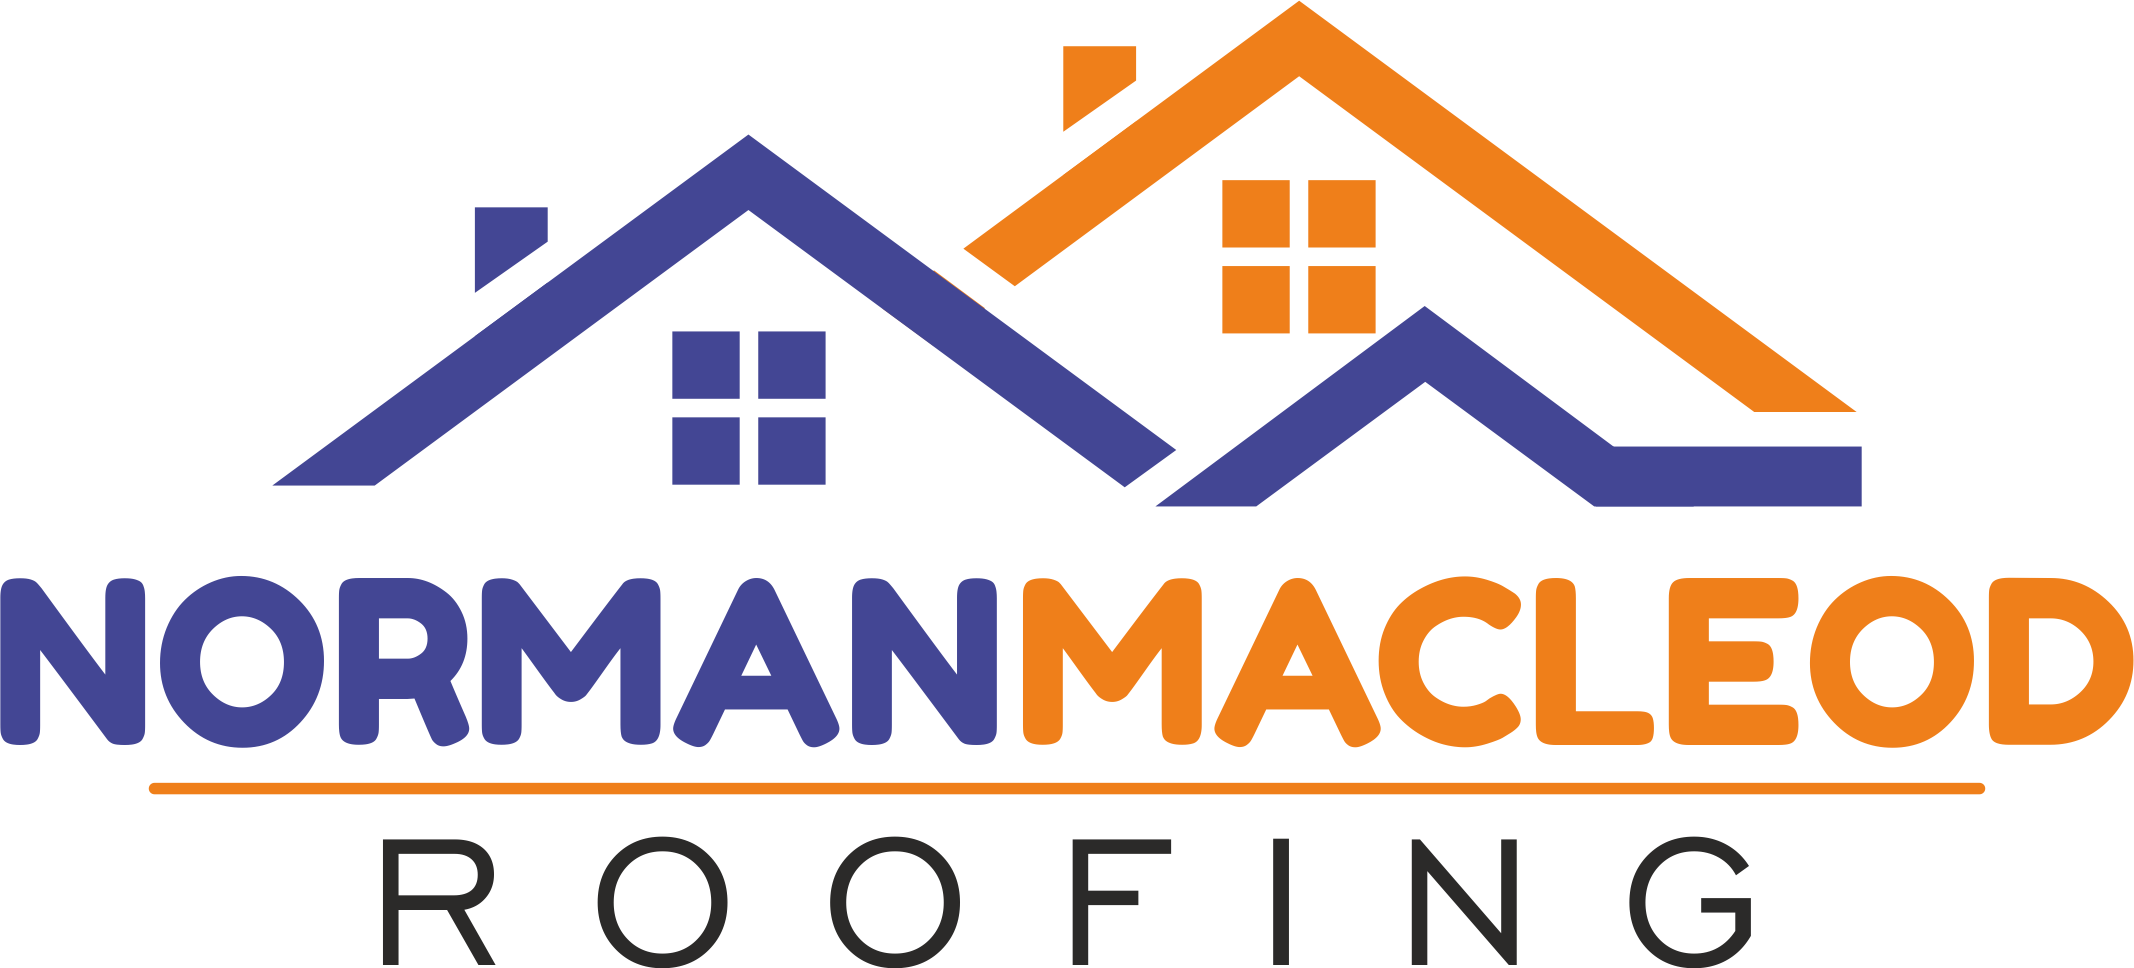 Norman Macleod Roofing